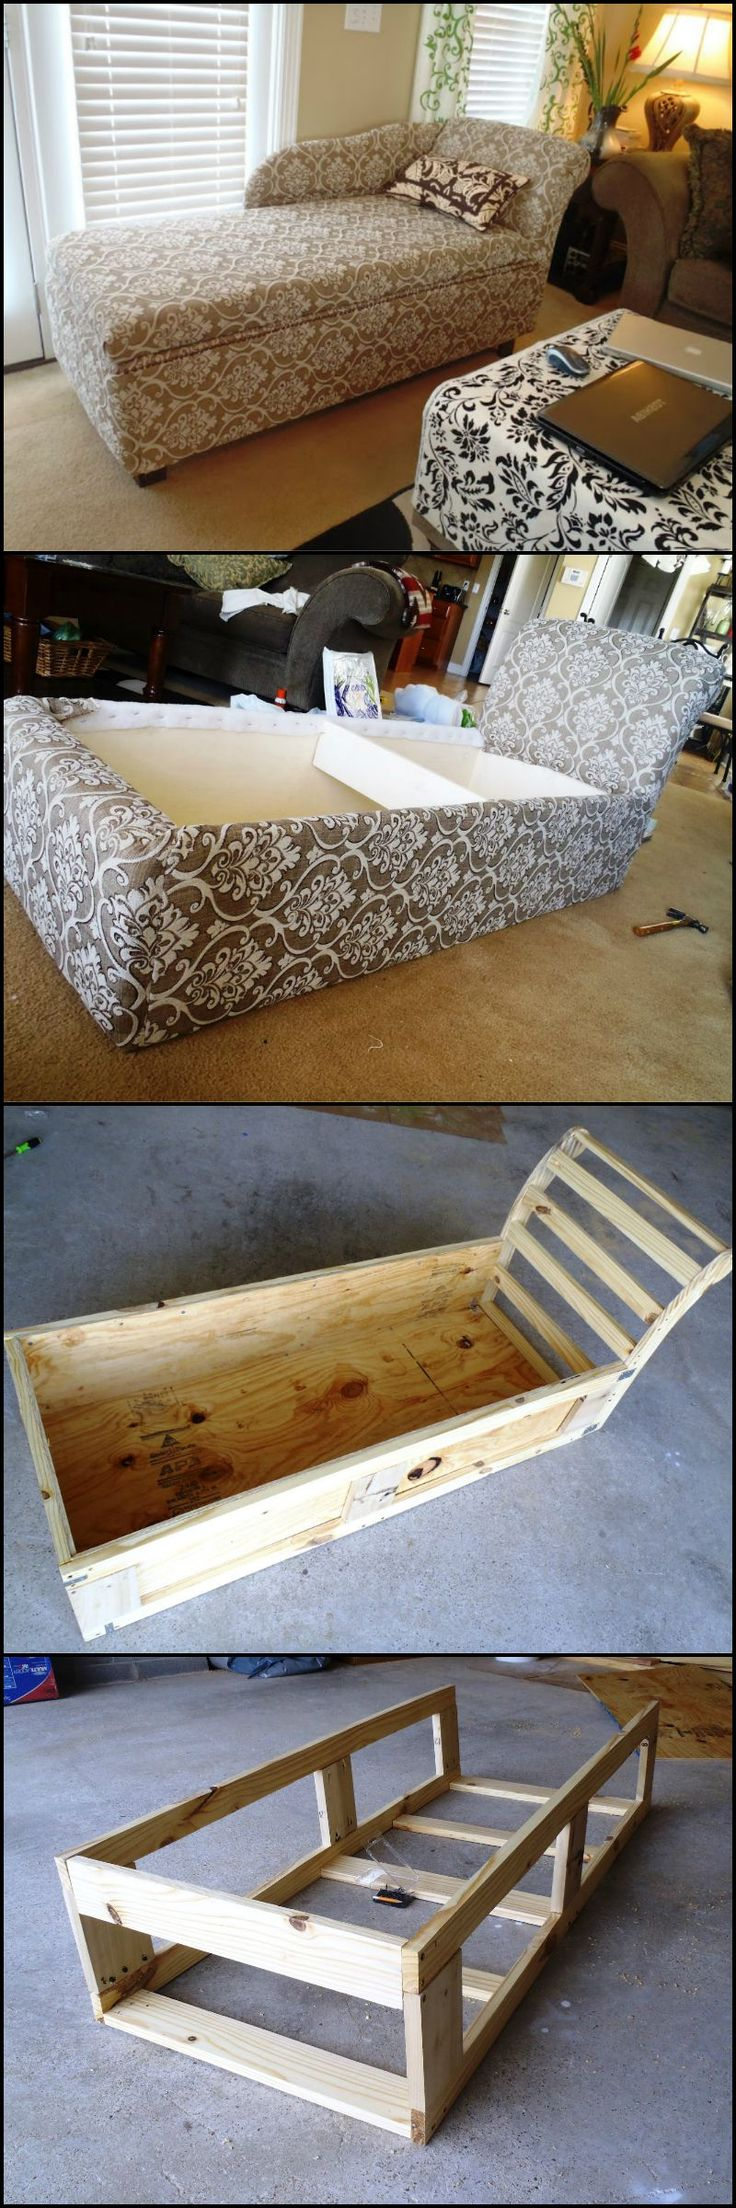 How To Build A Chaise Lounge With Extra Storage Space http://theownerbuildernetwork.co/werk We're glad we came across this chaise lounge. It's built with a simple frame, comfortable and a perfect place for keeping a great amount of stuff.